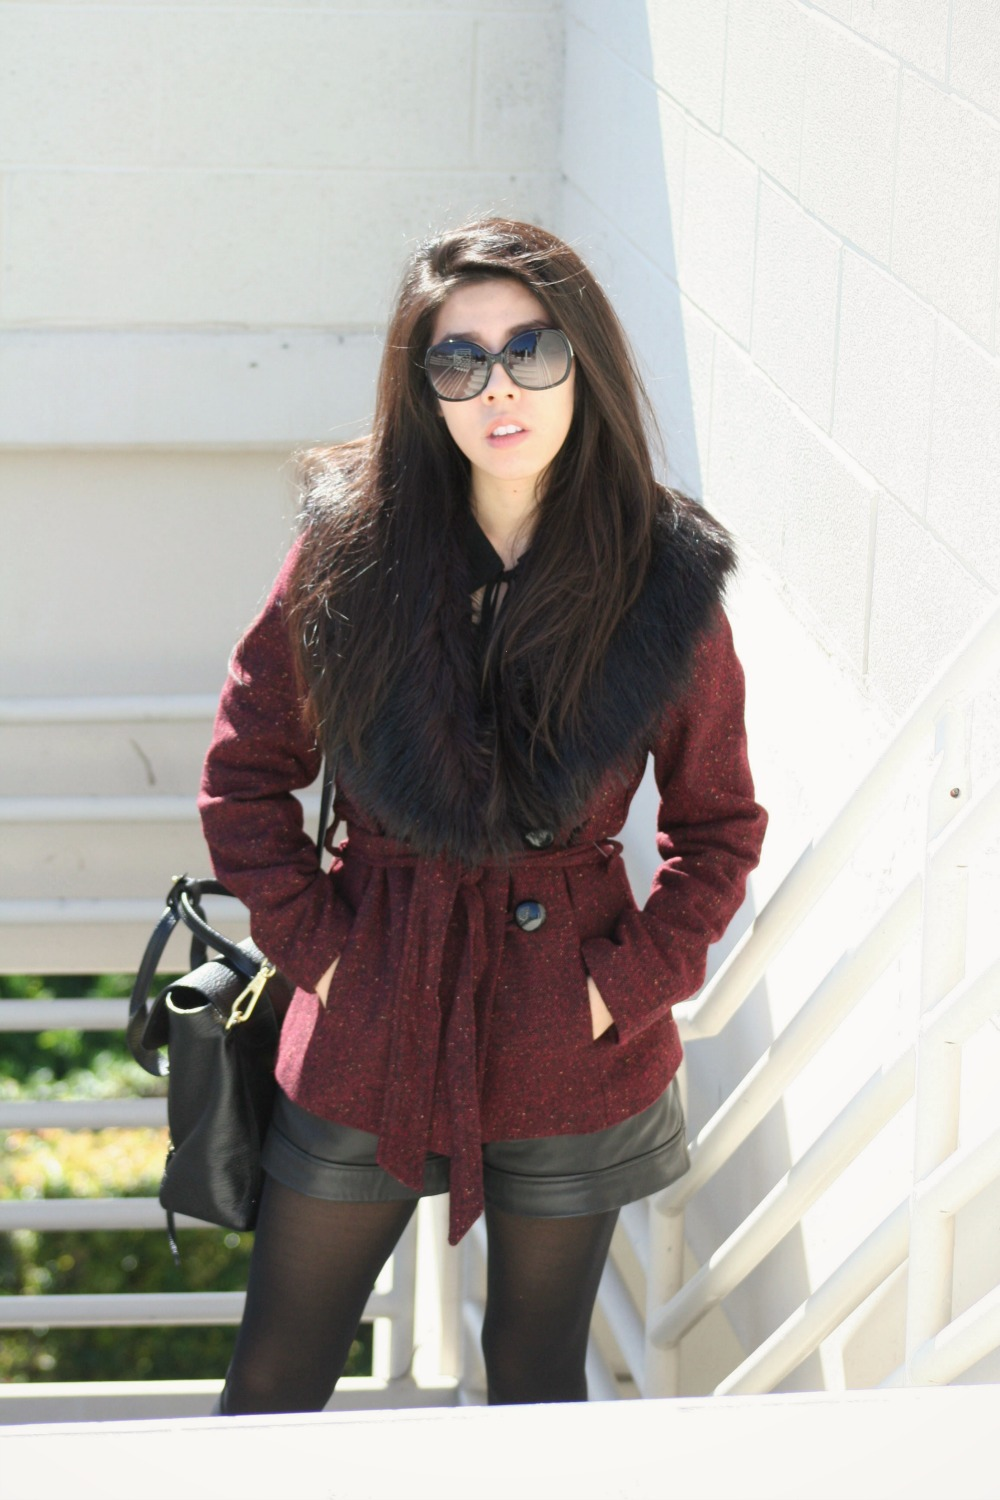 Burgundy and Black Casual School Outfit_Adrienne Nguyen_Invictus